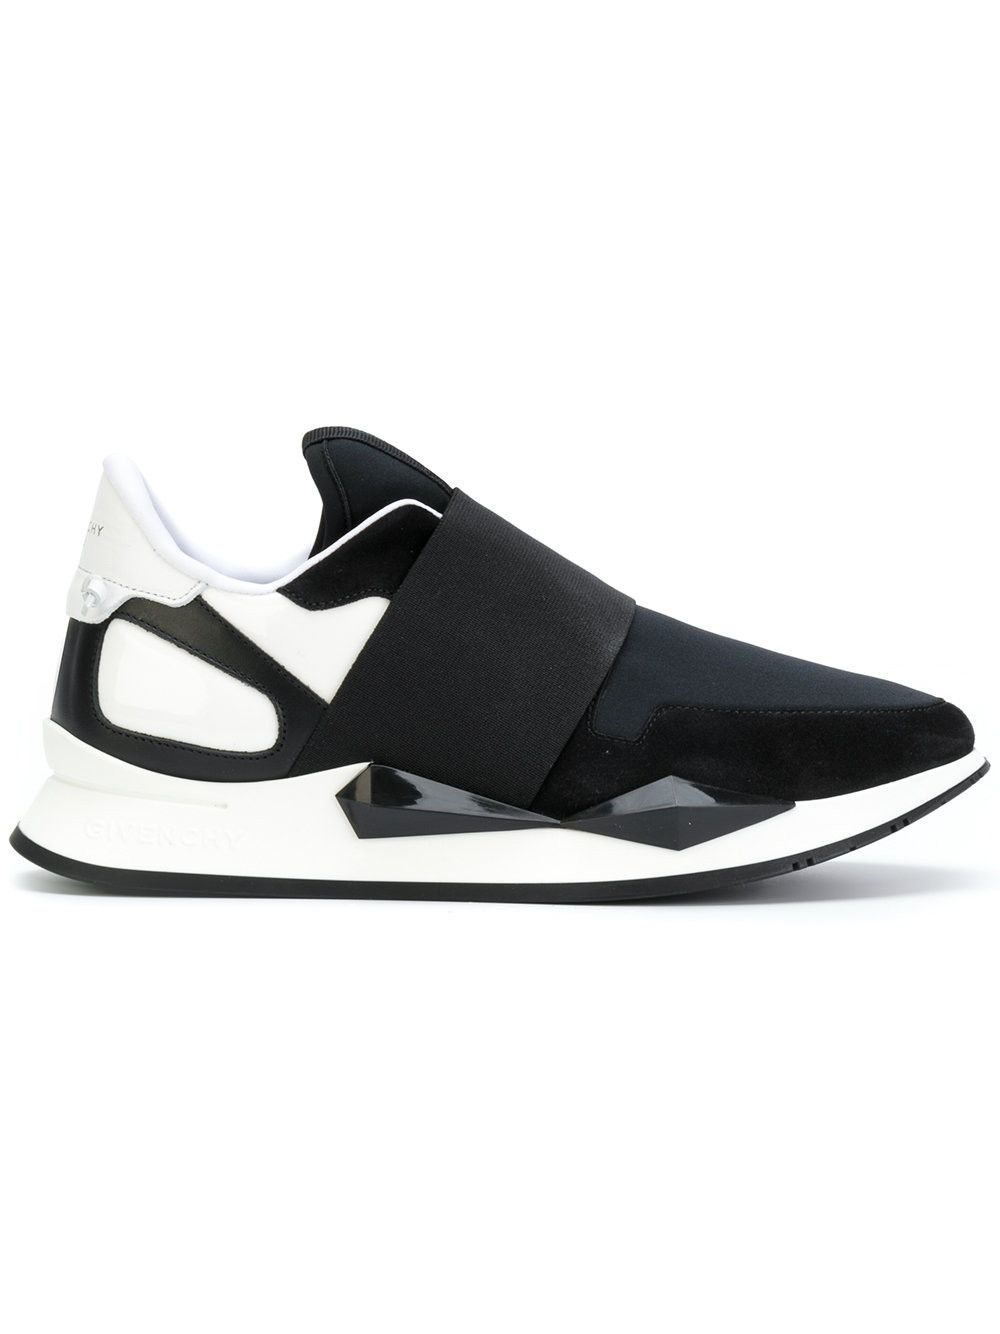 6111c4f038d5f GIVENCHY Active Sneakers.  givenchy  shoes